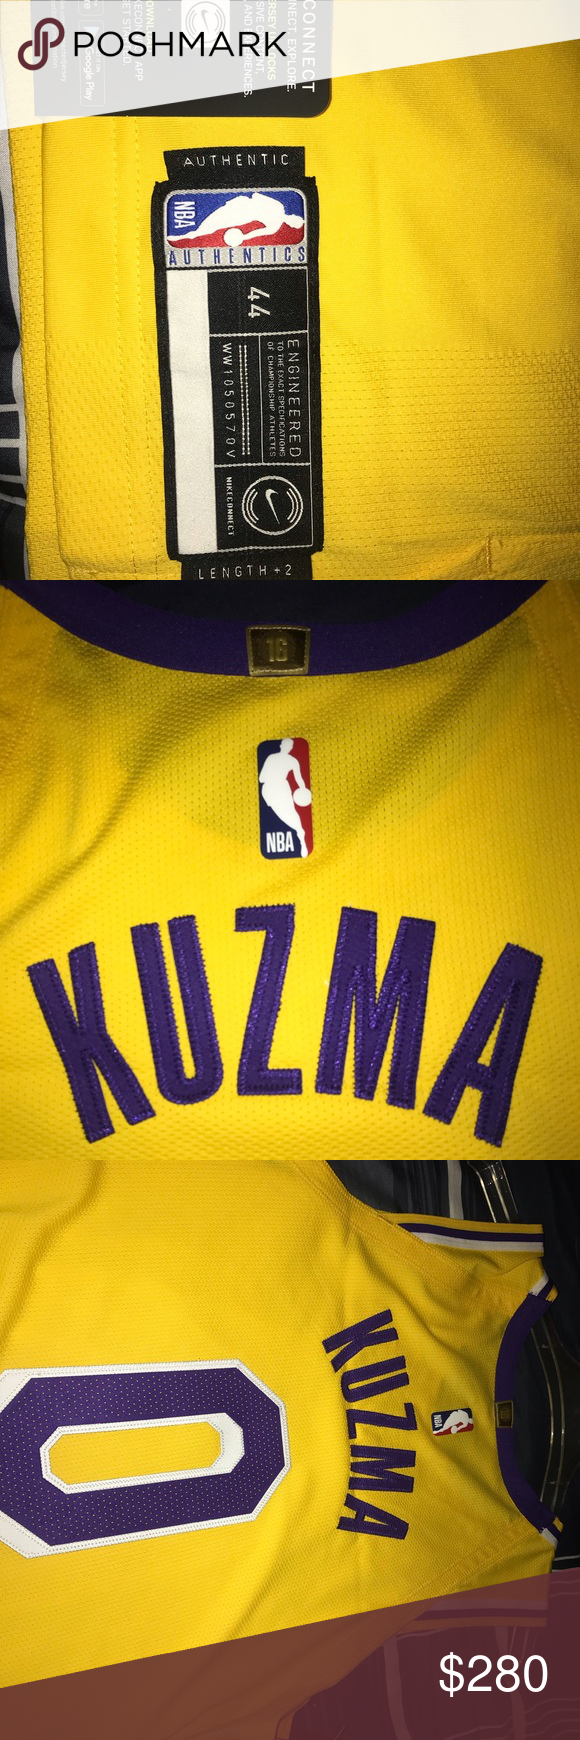 reputable site 218ef 57230 Authentic Kyle Kuzma Lakers Jersey Authentic on court pro ...